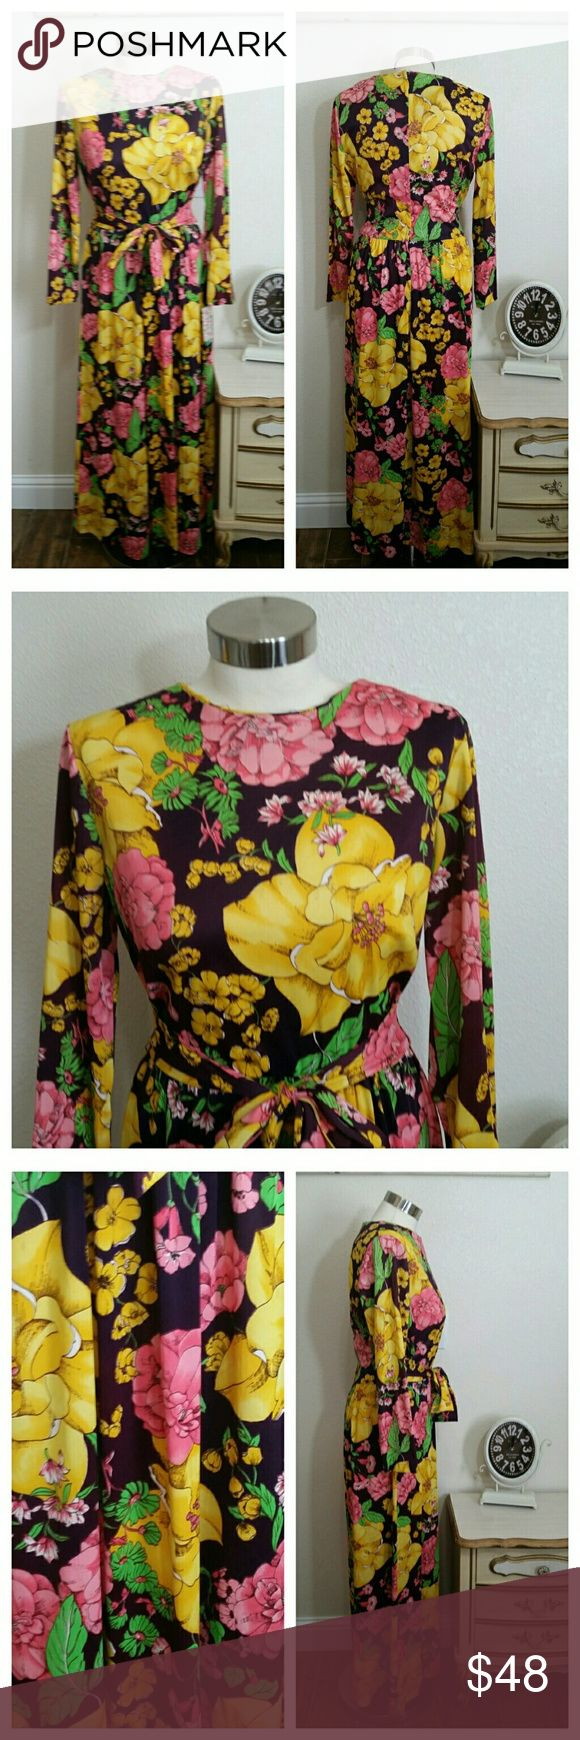 """Vintage Maxi Dress, Boho, Hippie, Medium Vintage 1970s maxi dress big Floral size medium  Long Sleeves Hand sewn Silky polyester Back zipper Ties attach to belt dress Gathers at waist Full skirt Big floral print Darts  Measurements:  36"""" Bust 28"""" Across waist center of wide band Full hips 54"""" length  Very good vintage Condition, ready to wear.  Thank you. Vintage Dresses Maxi"""